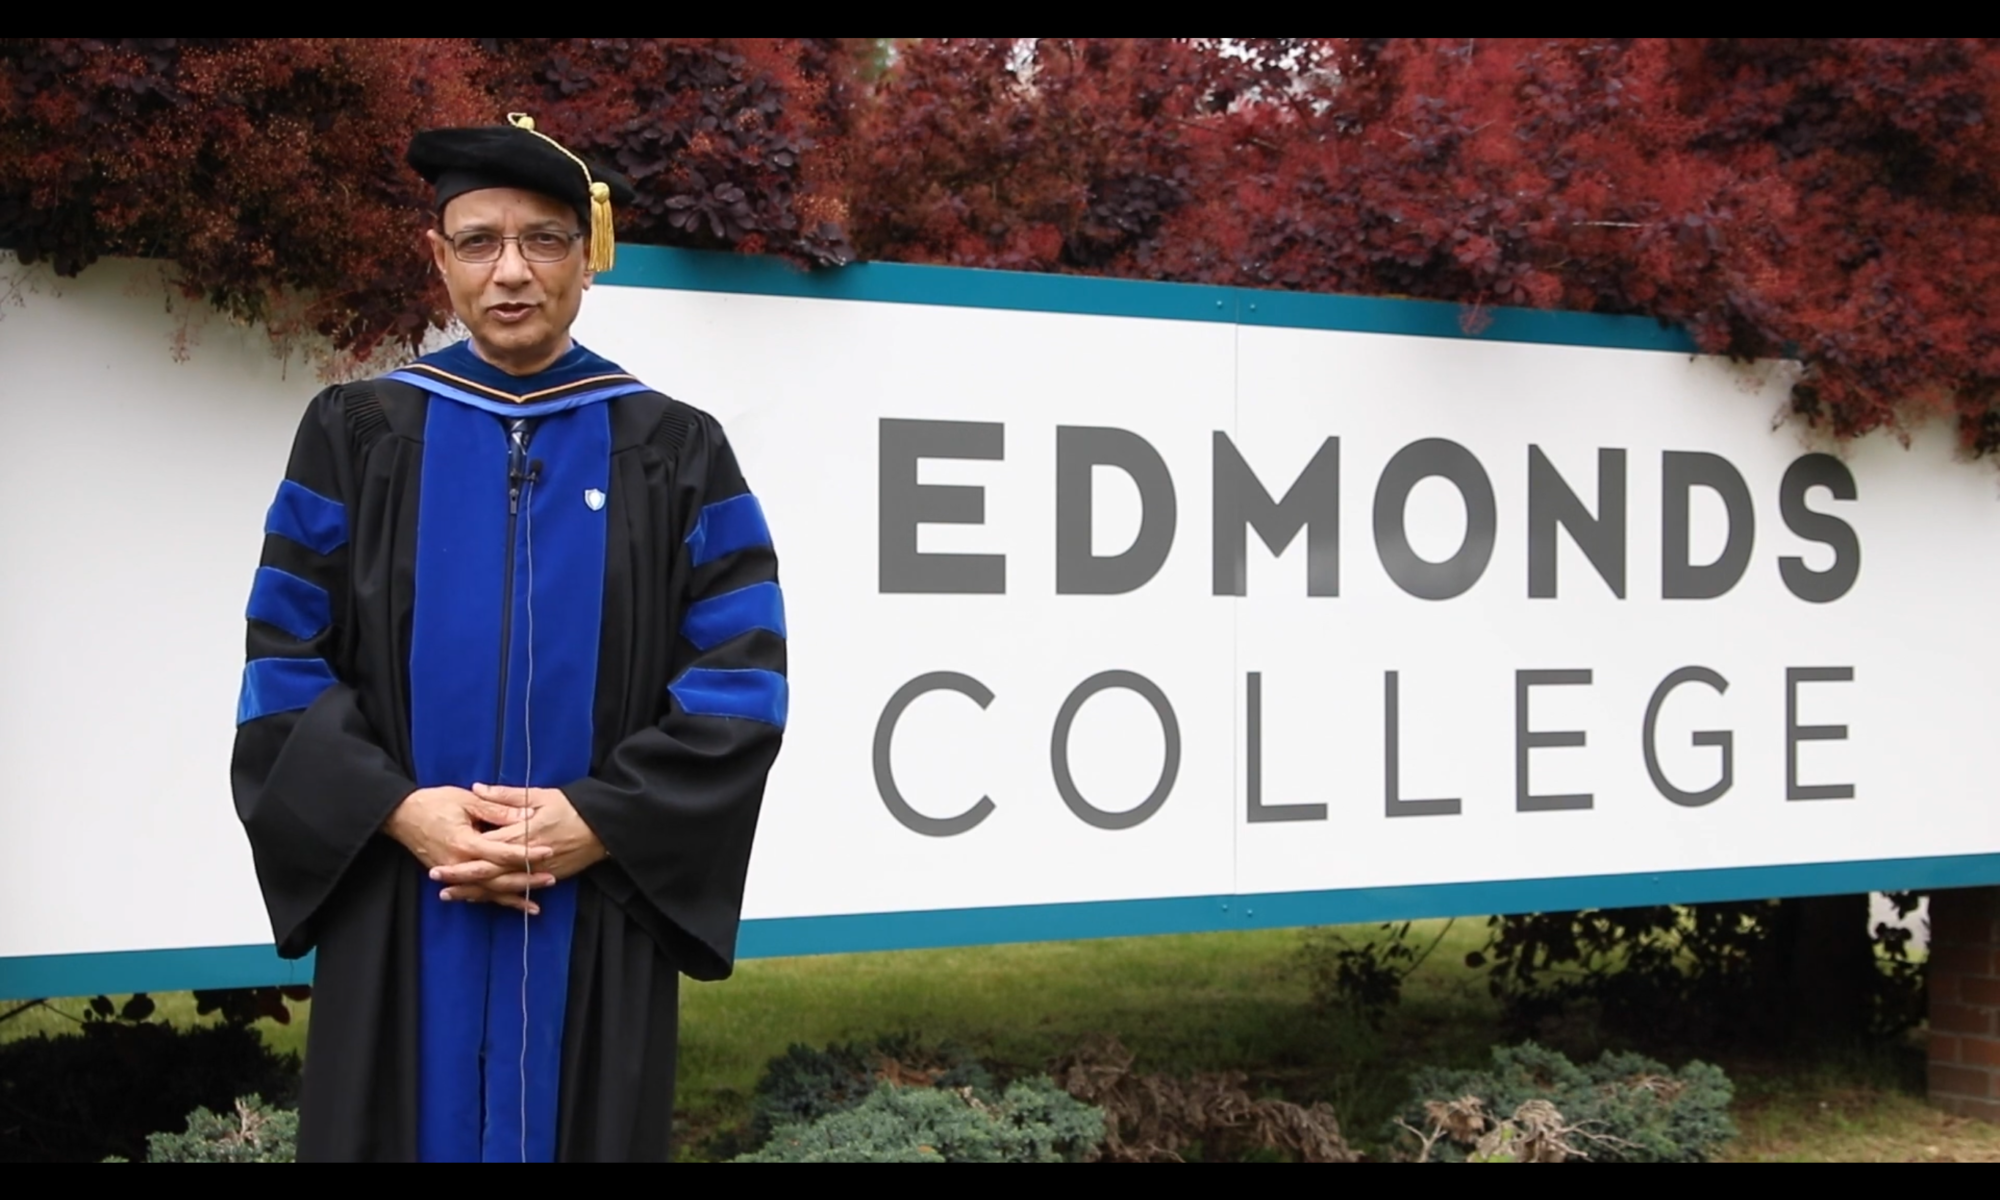 Commencement speaker at Edmonds College